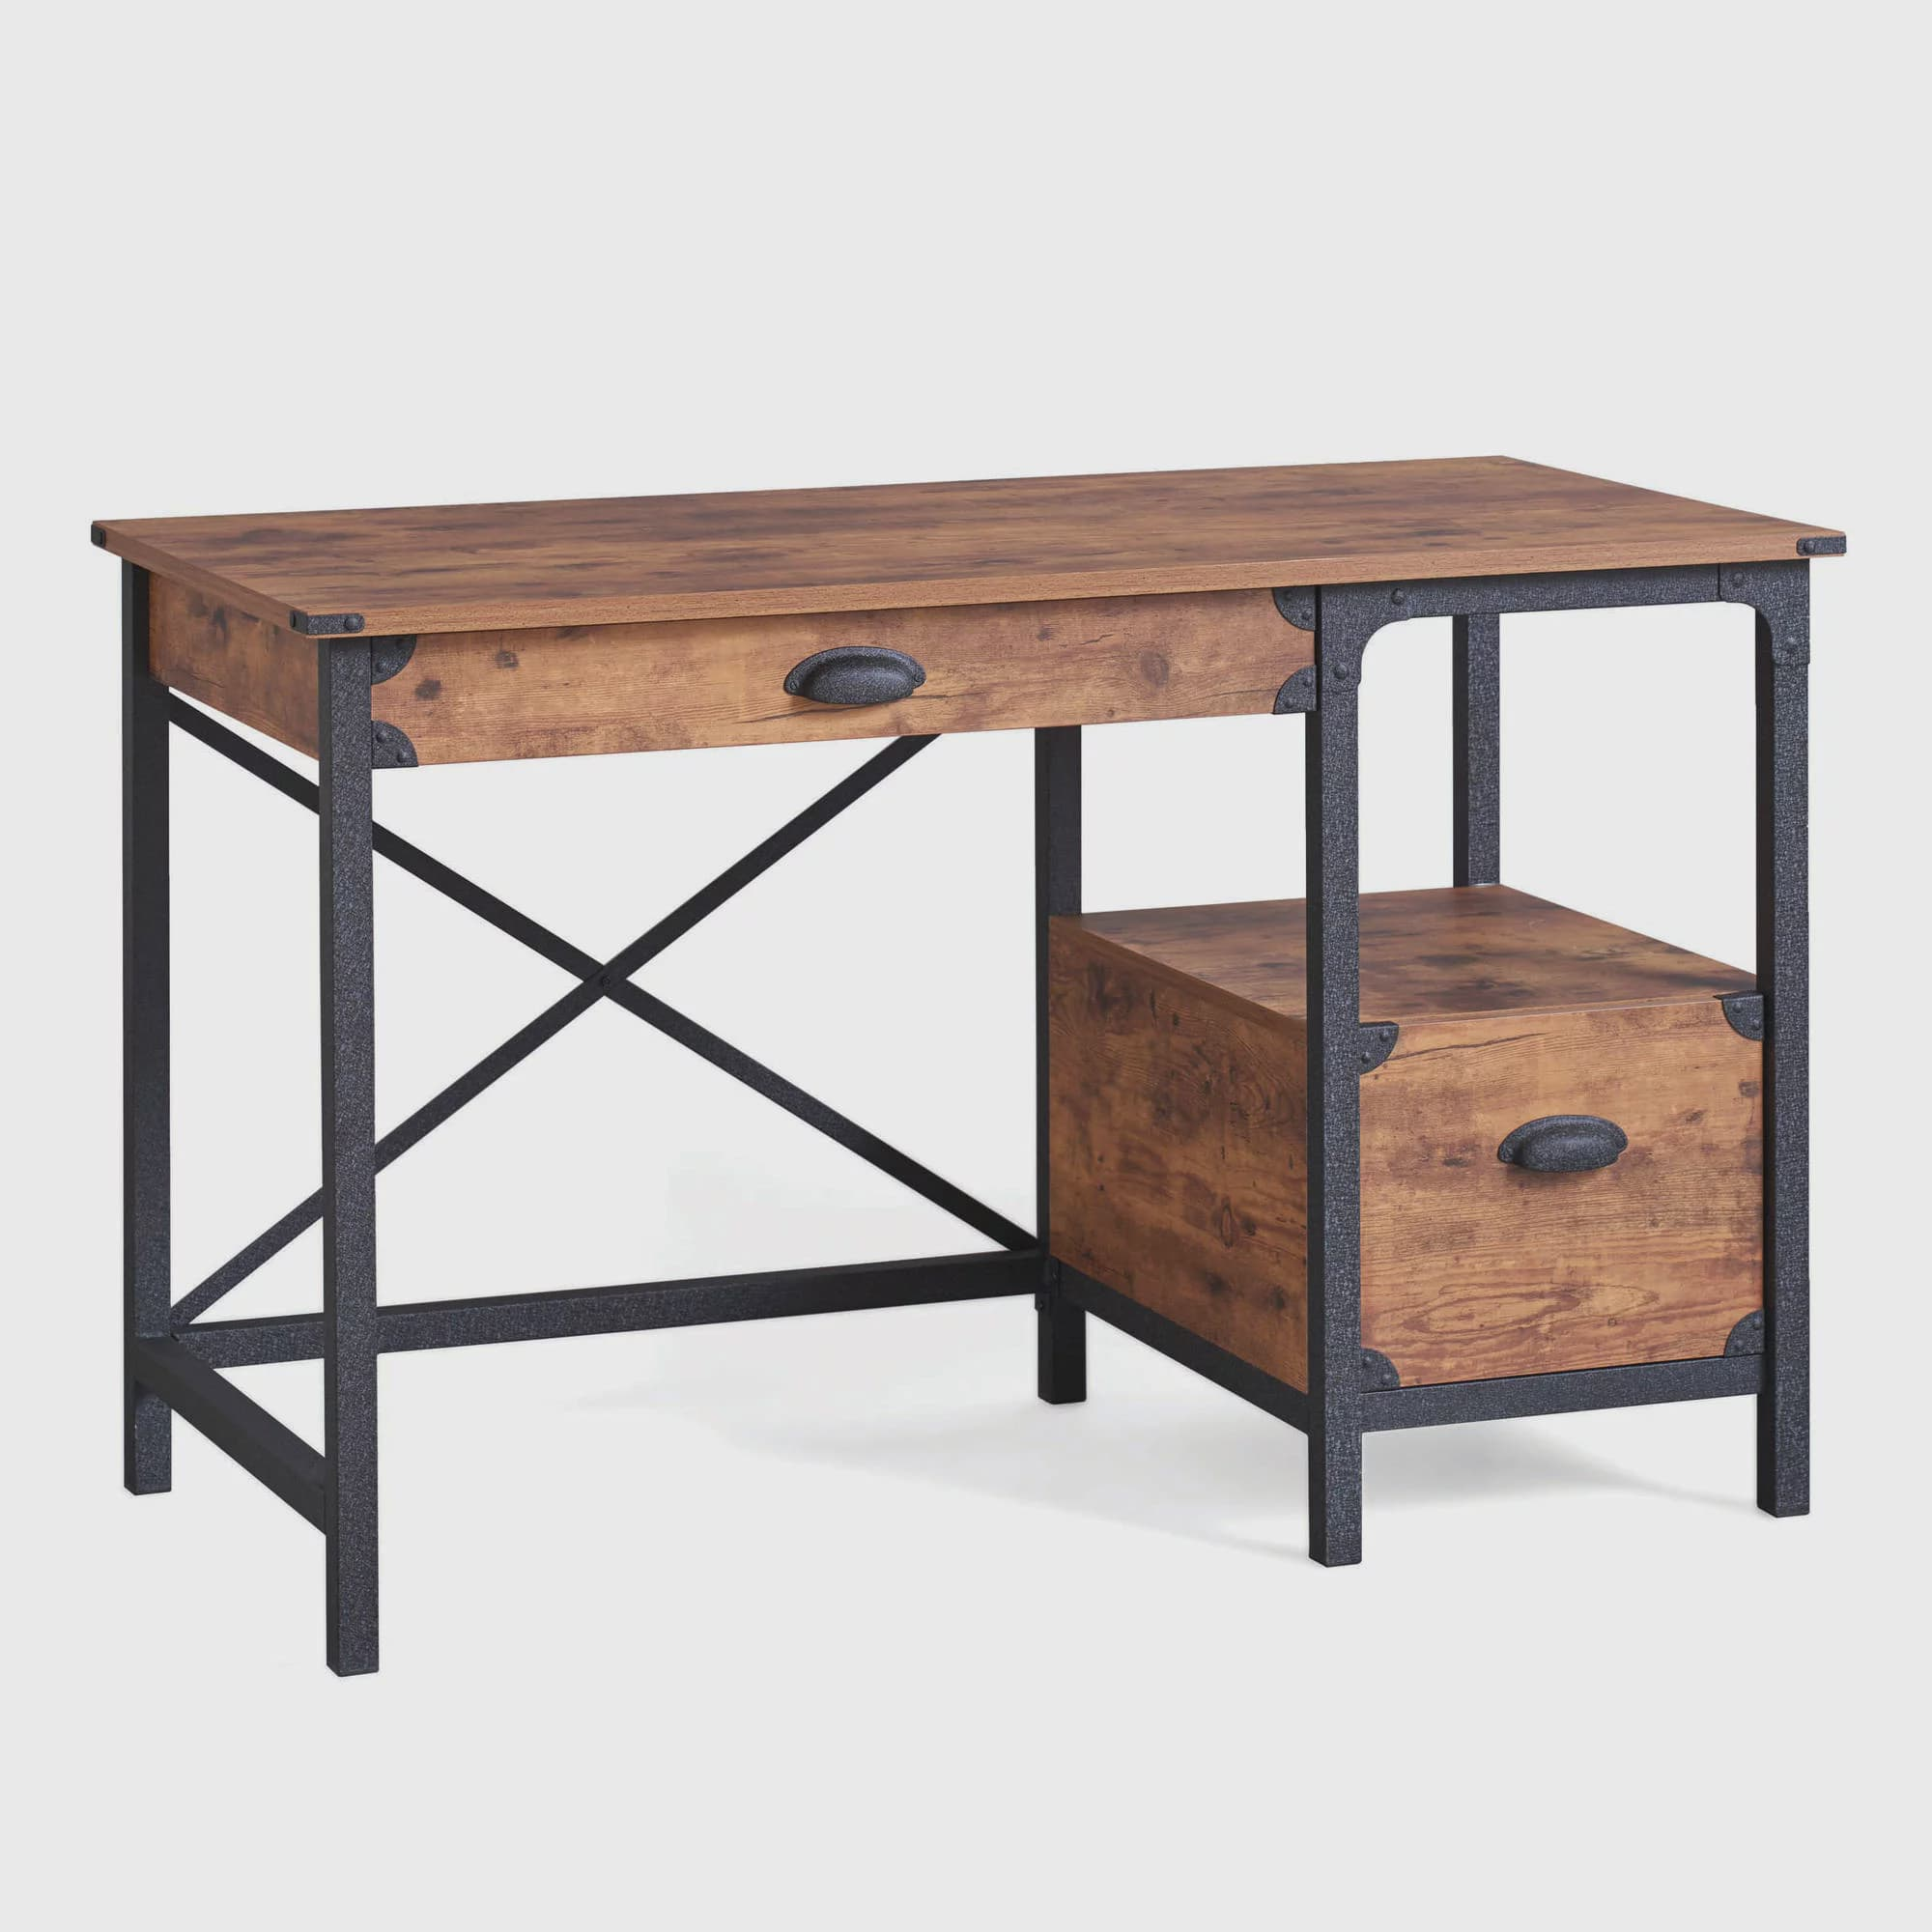 loft style table Rustic desk sawhorse wood desk FREE SHIPPING Industrial desk kitchen table office conference table